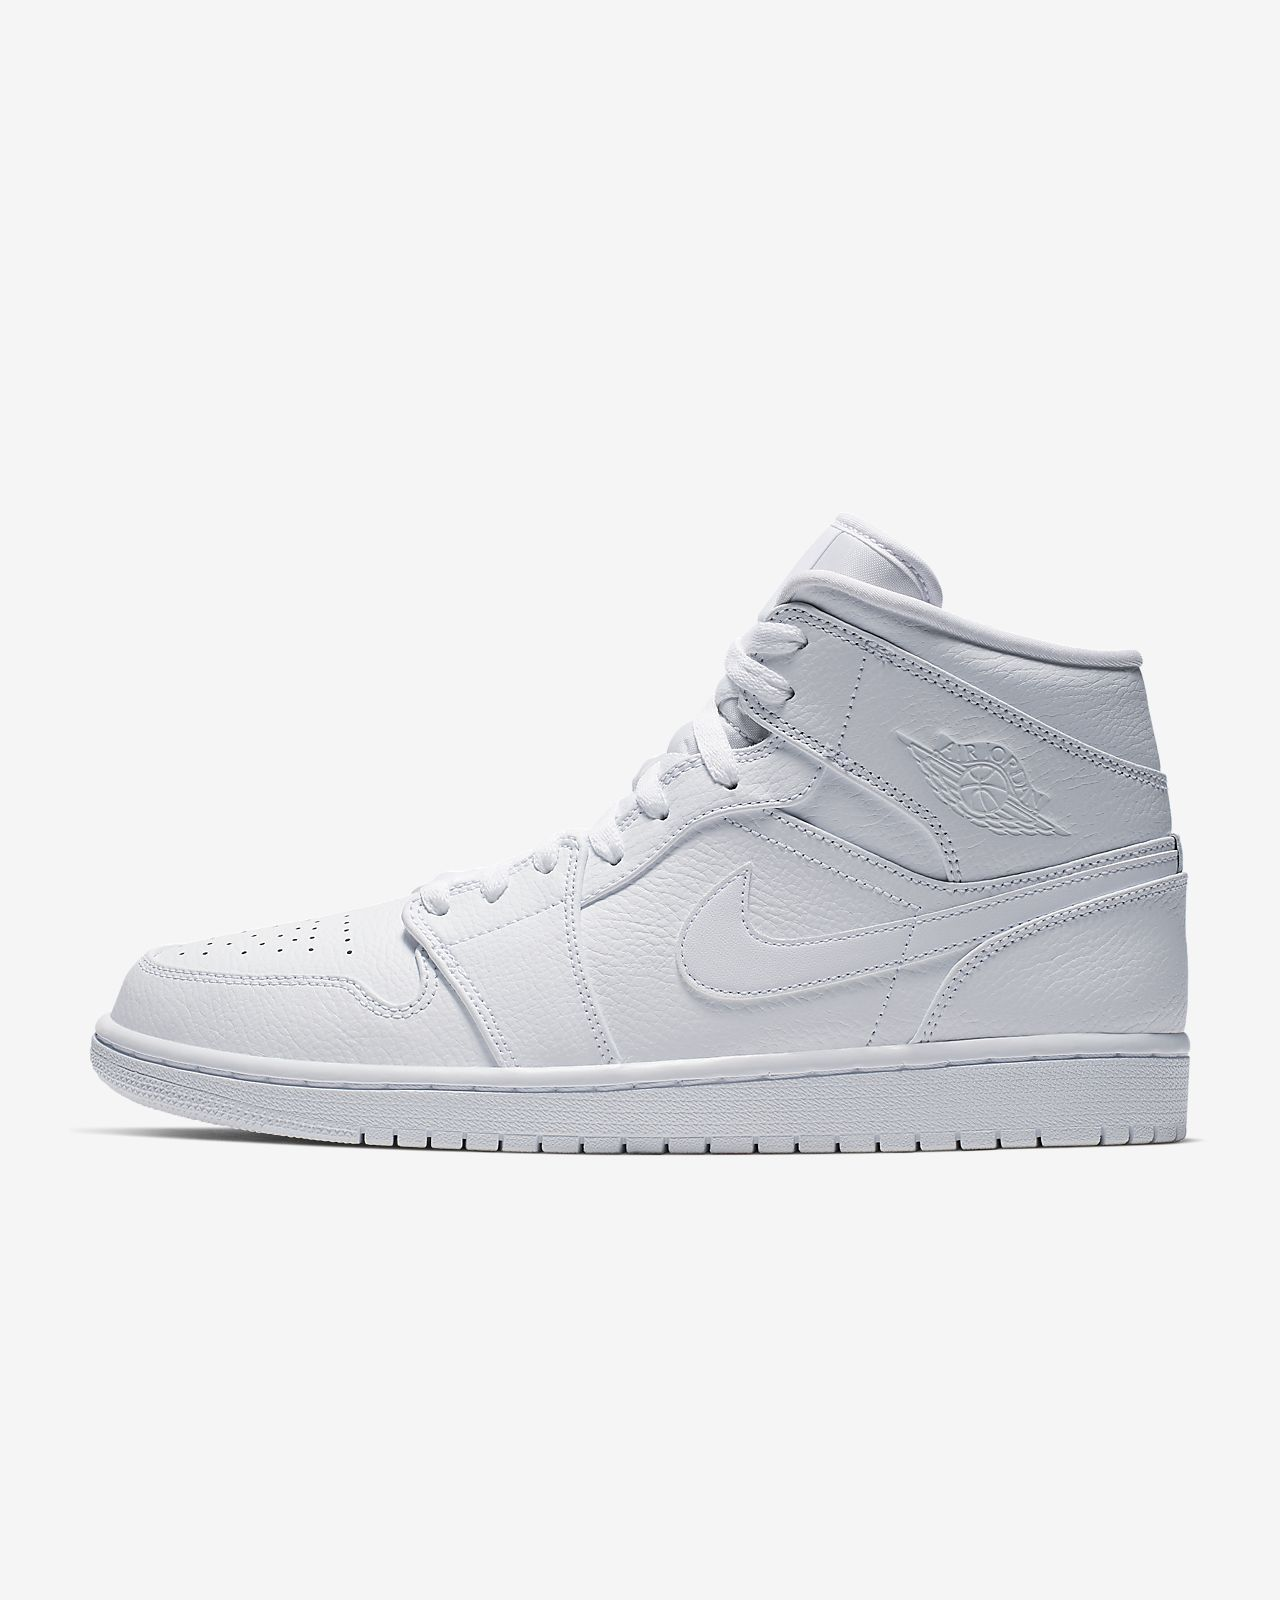 cheaper 2933a 51faa Air Jordan 1 Mid